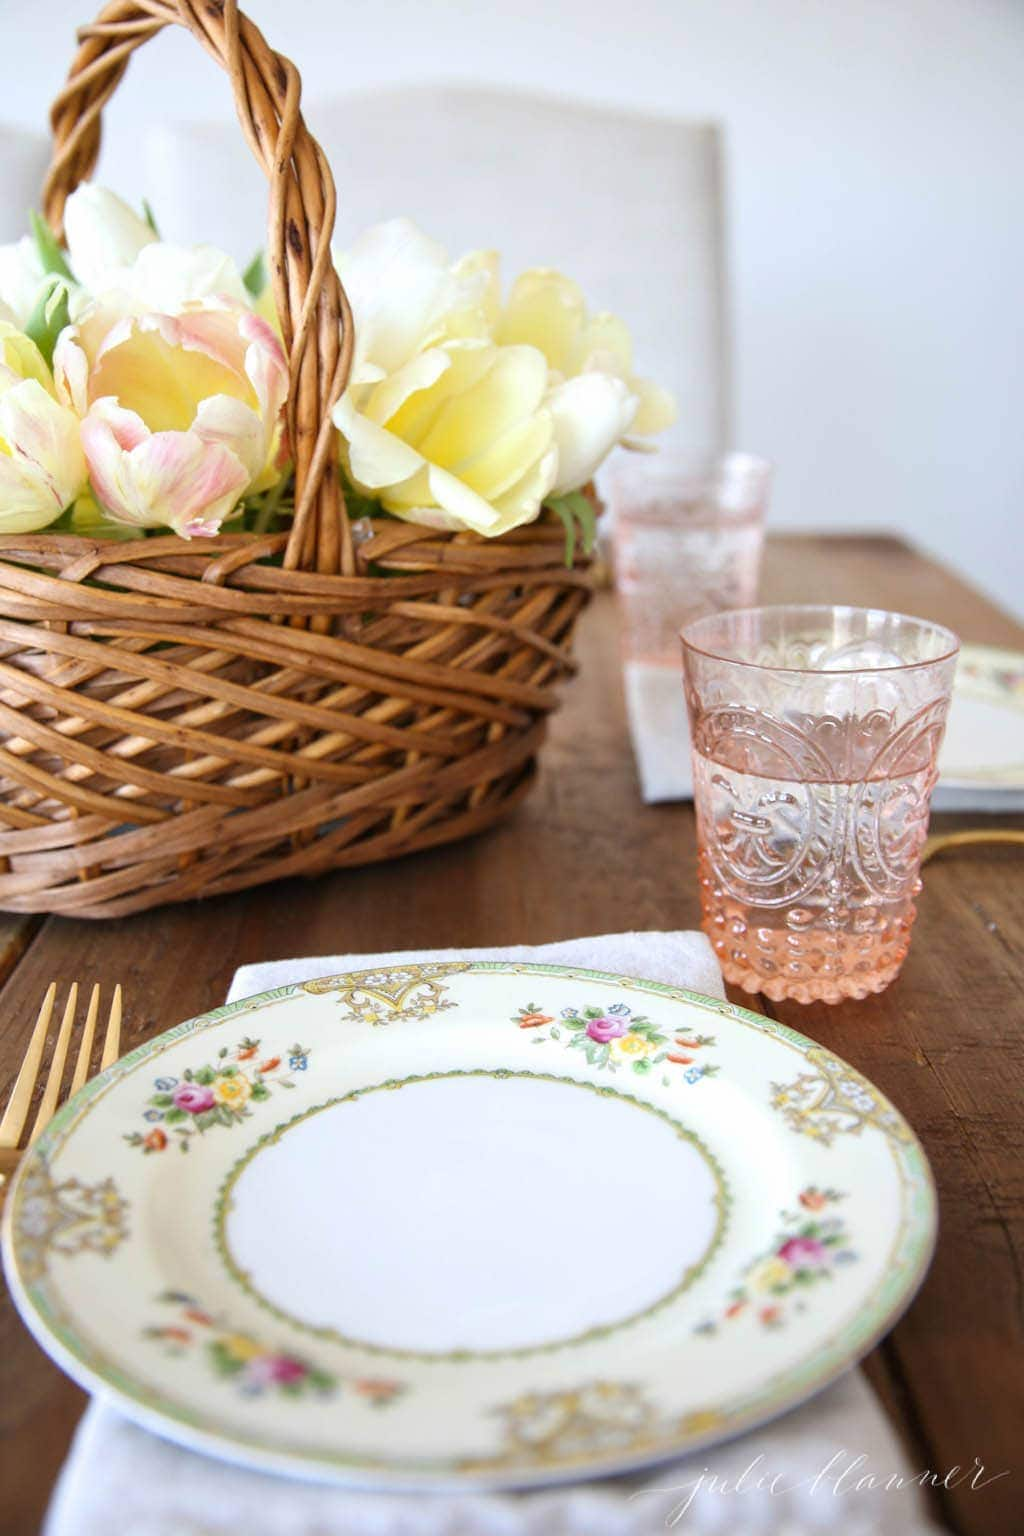 A simple spring table setting for brunches, showers & beyond